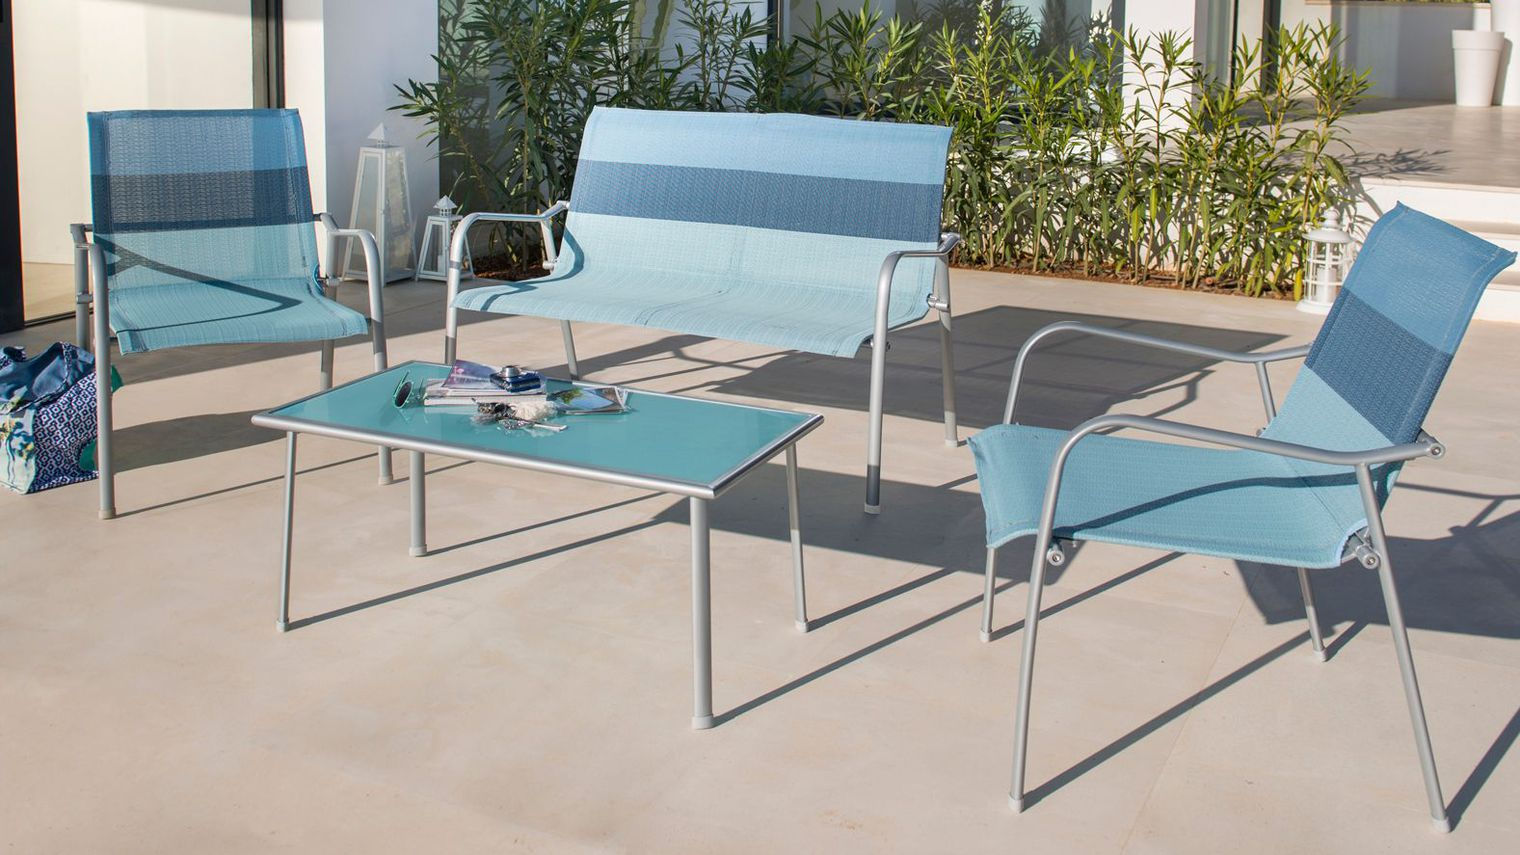 Table Basse Salon Design Pas Cher Of Table Basse Salon De Jardin Pas Cher Mobilier Design